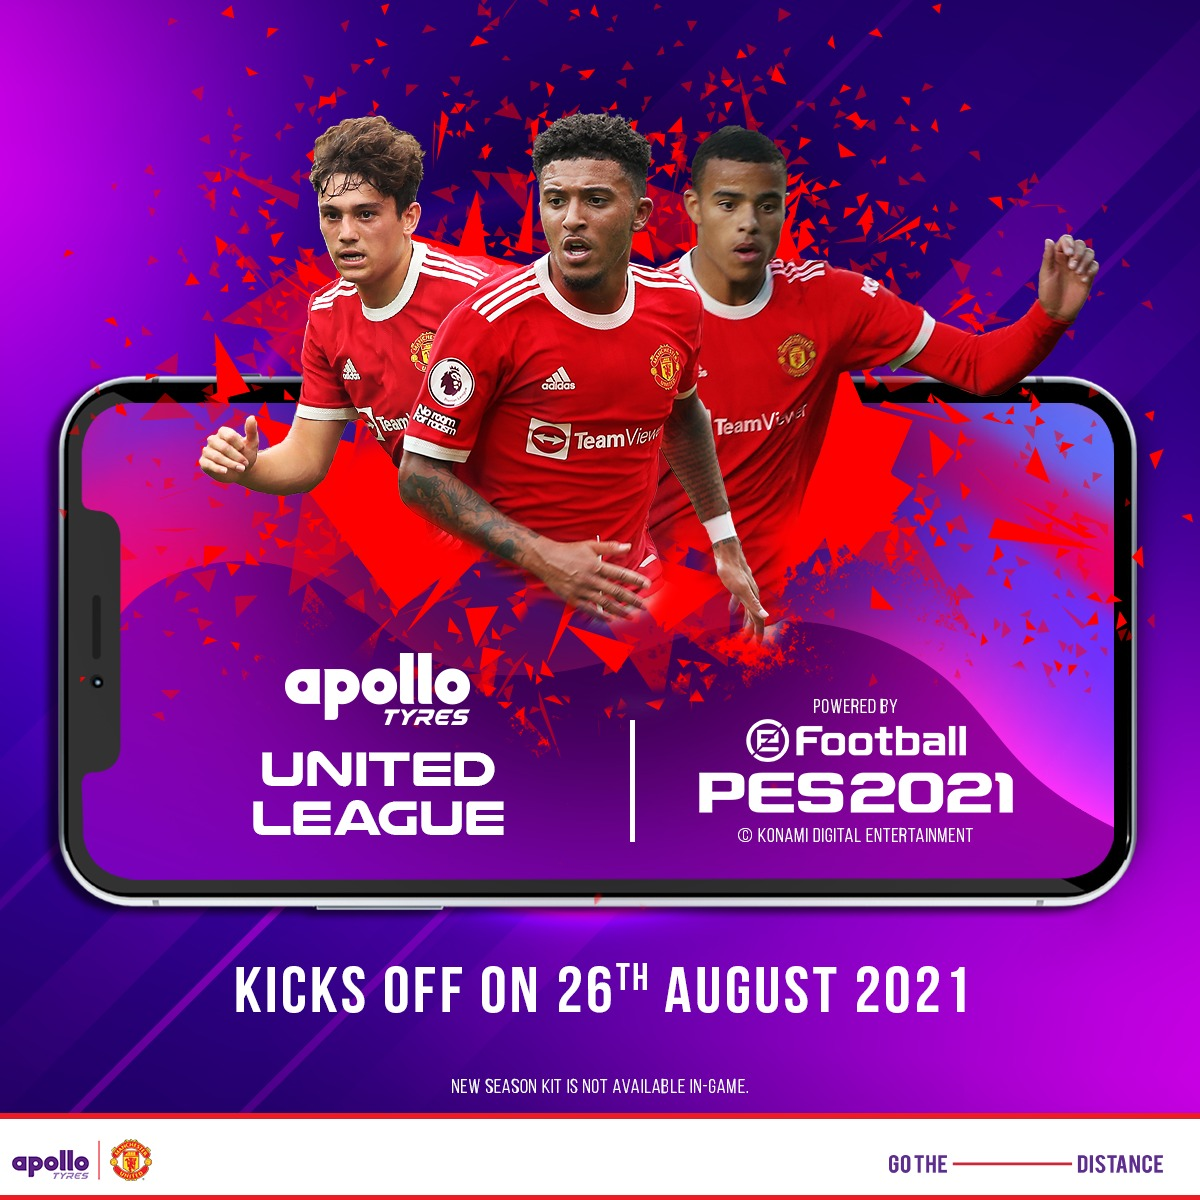 Apollo Tyres partners with KONAMI to launch eSports Tournament across multiple regions, in association with Manchester United